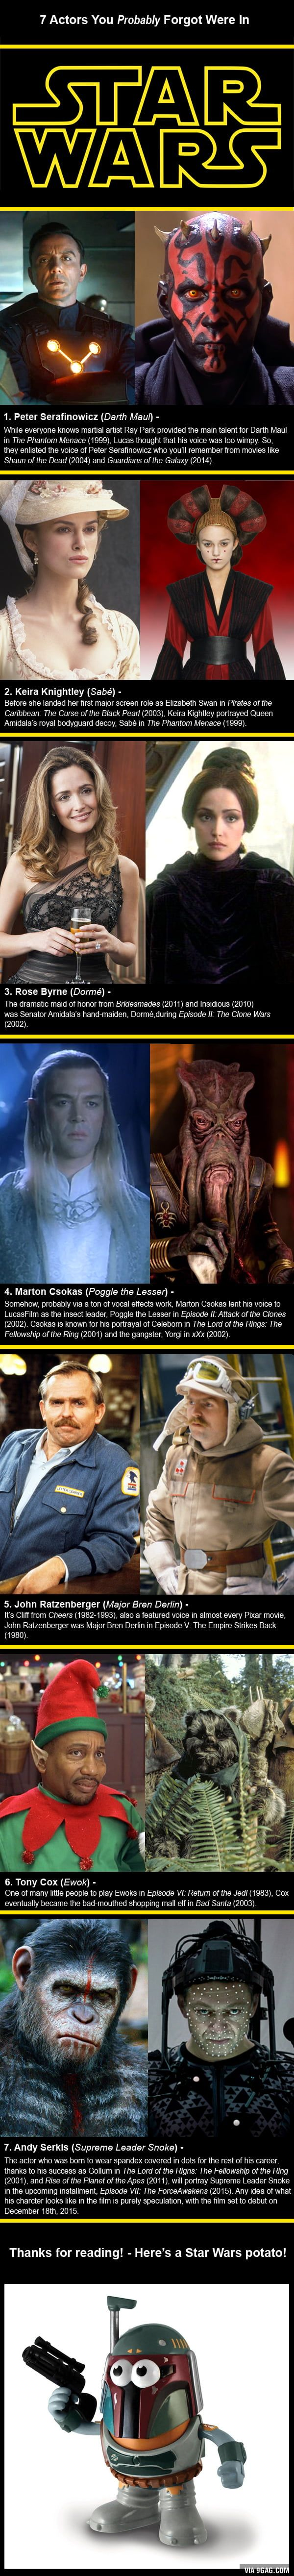 7 Actors You Probably Forgot Were In Star Wars Star Wars Humor Star Wars Geek Star Wars Facts